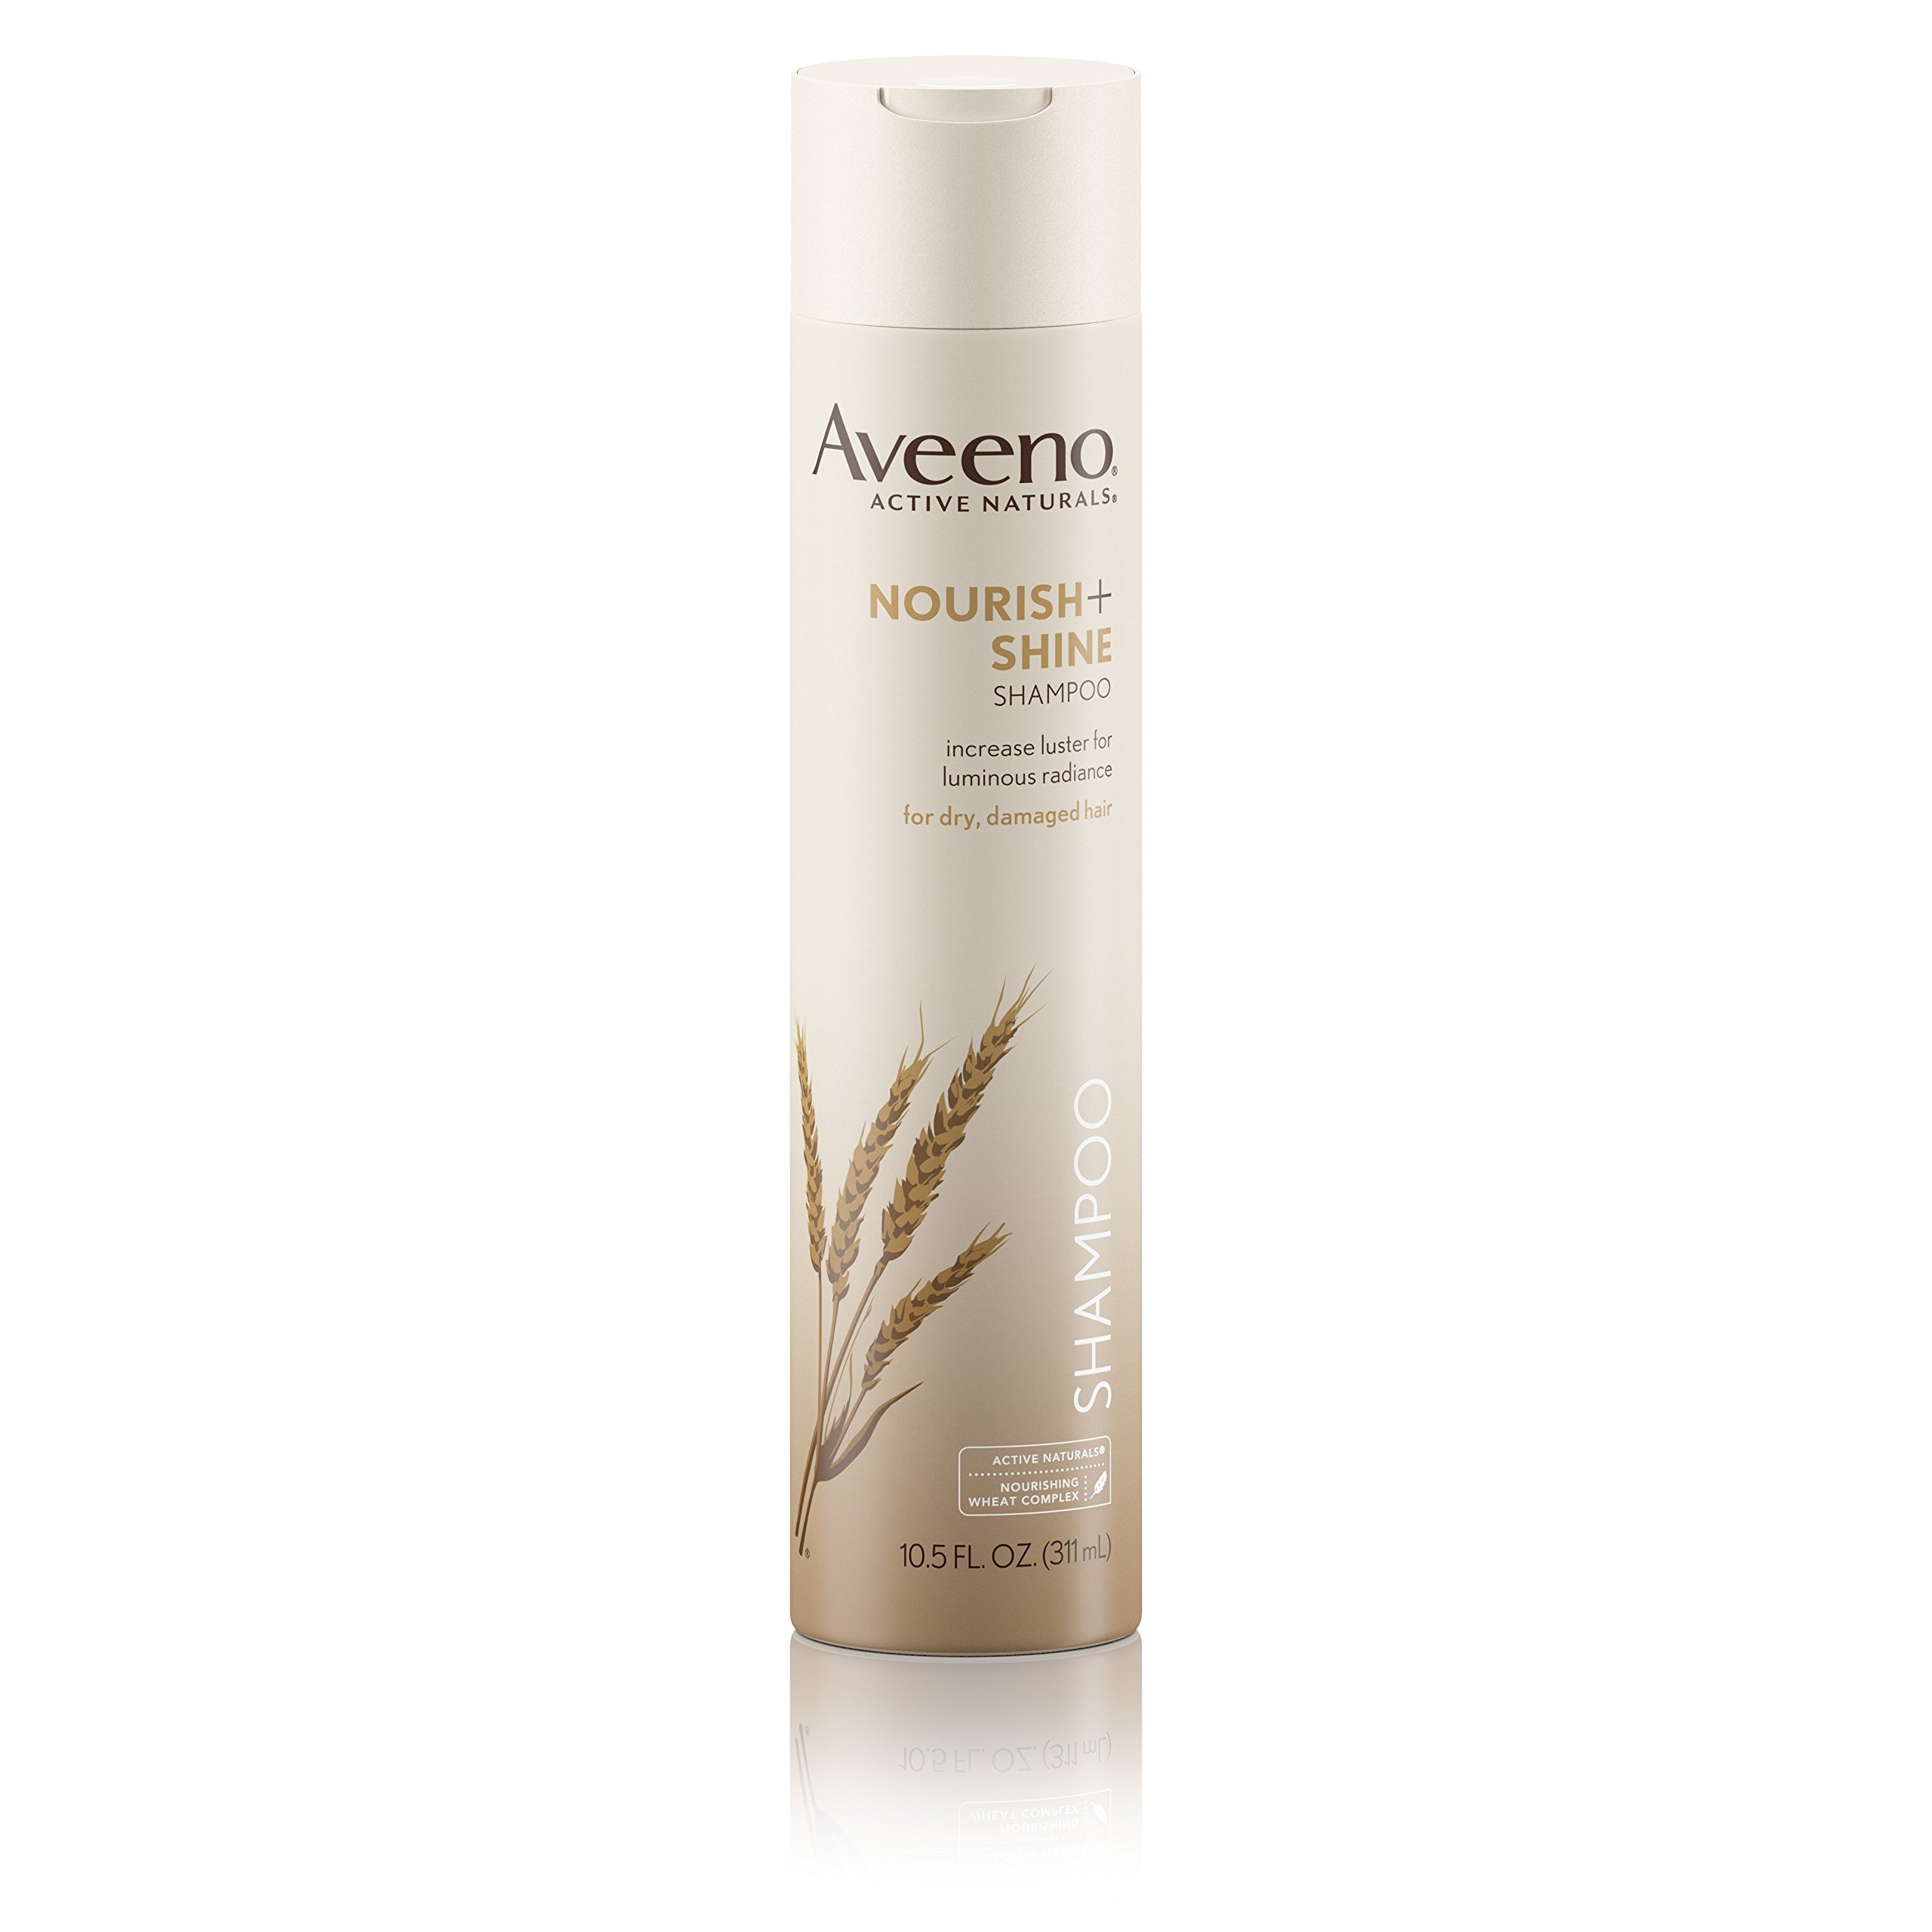 Aveeno Nourish+ Shine Illuminating Shampoo For Shiny Hair, 10.5 Fl. Oz, (Pack of 3)